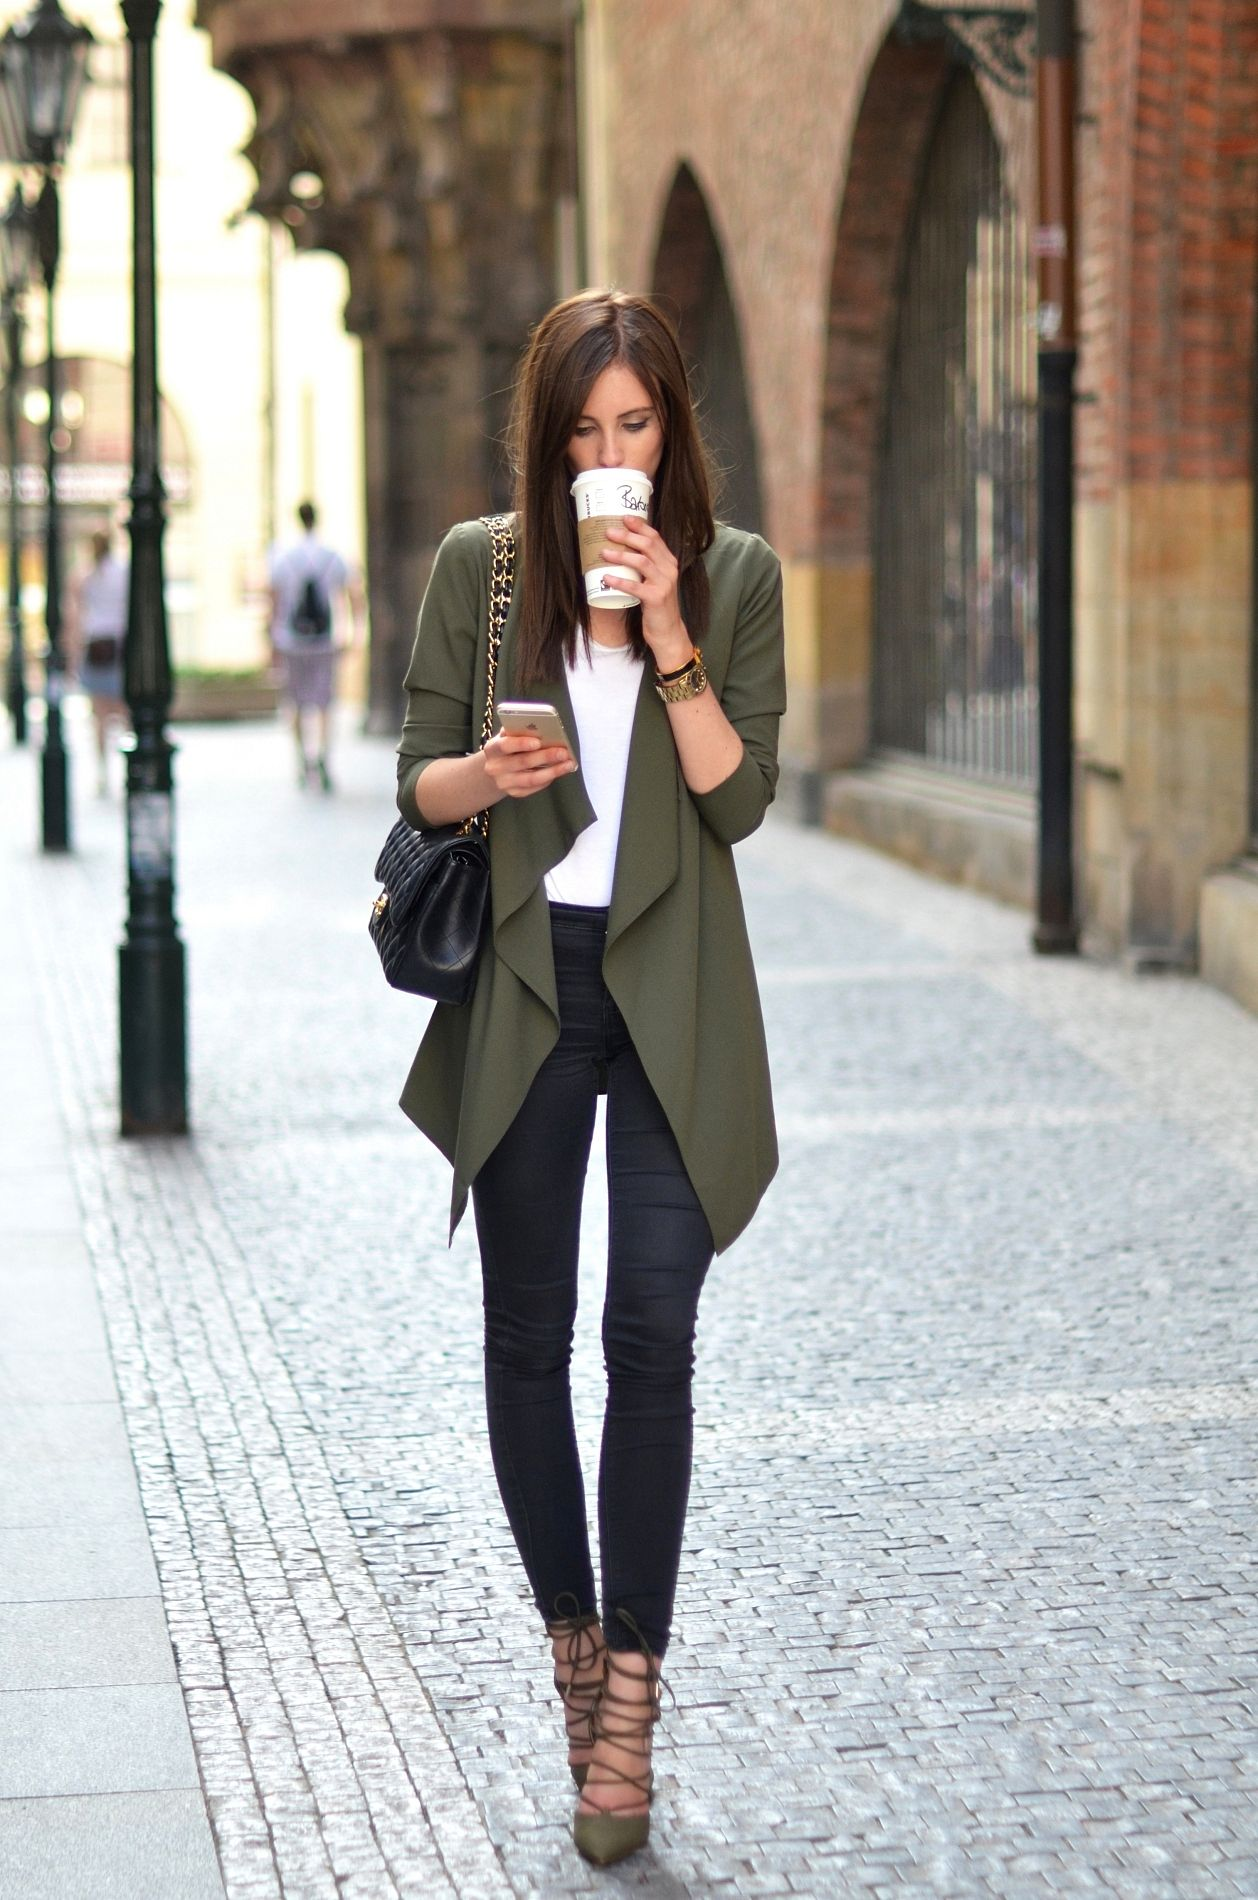 I like this type of look for the weekend -- an oversized, green jacket and skinny jeans (especially with boots!)